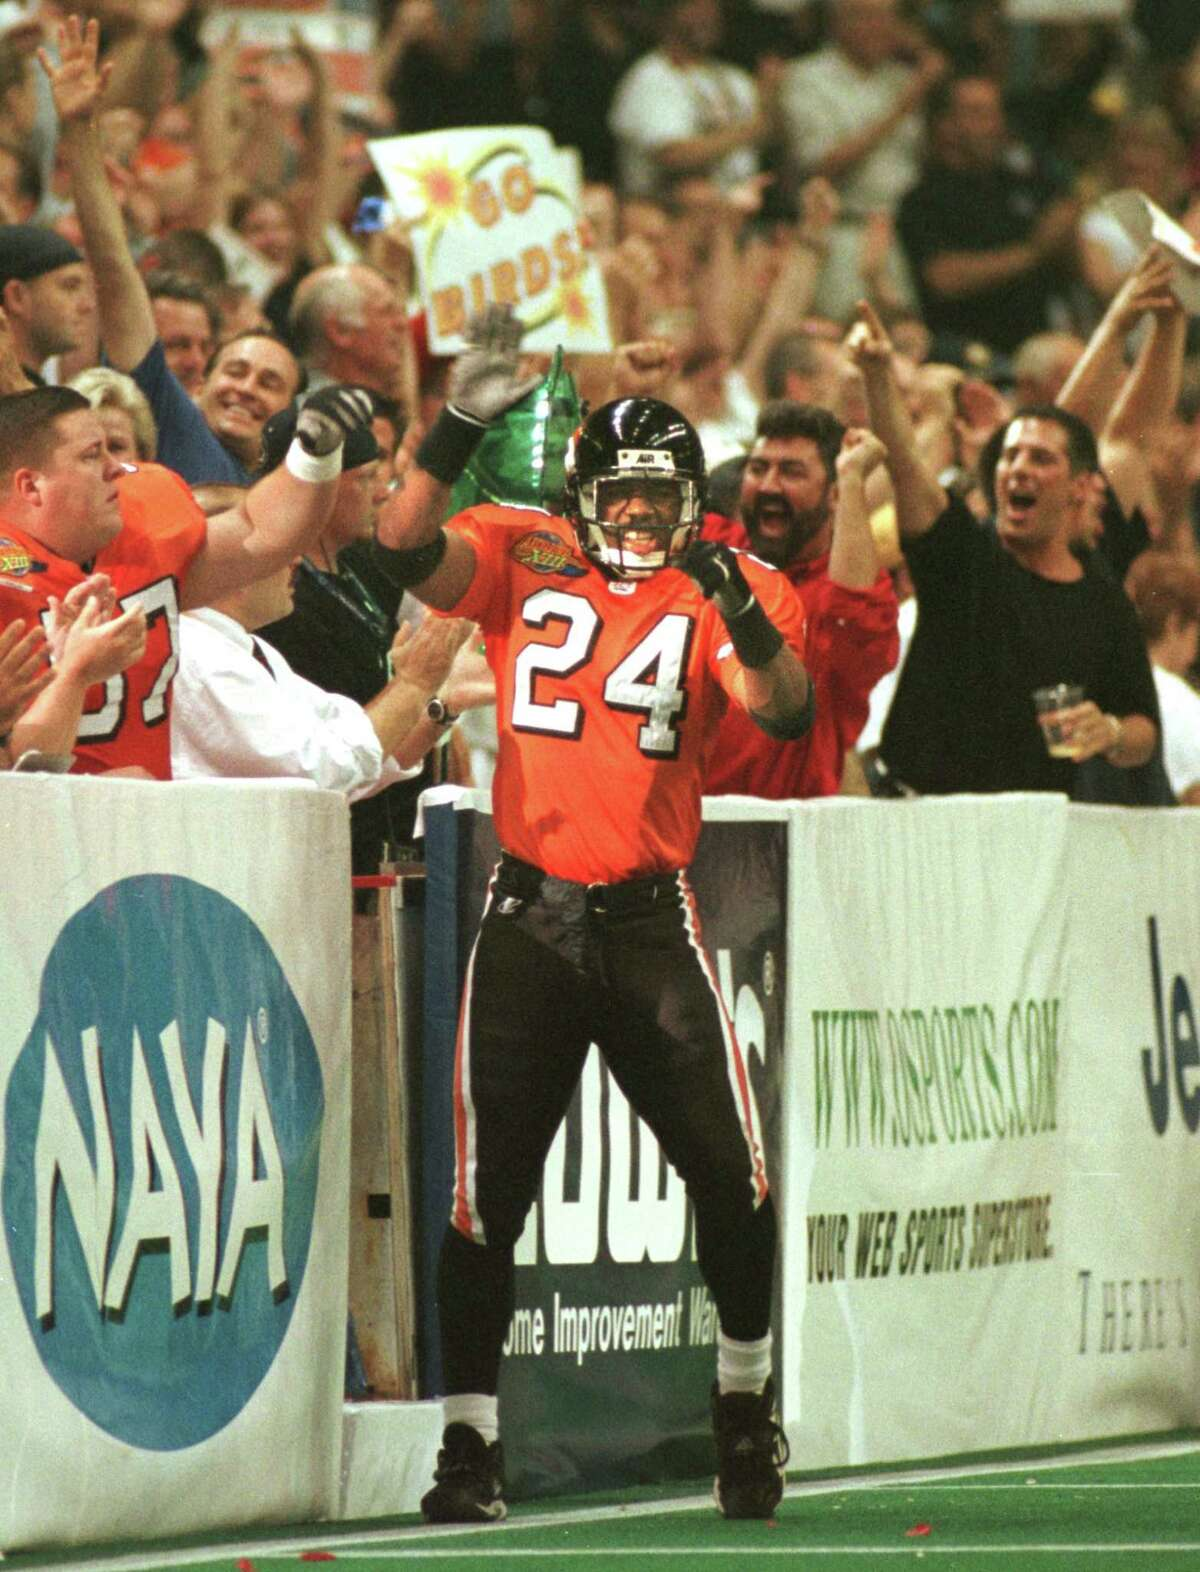 ALBANY FIRE BIRDS Defensive Saftey #24 Derek Stingley celebrates after a defensive stand during their game against the Orlando Predators in the 1999 ARENA BOWL XIII at the PEPSI ARENA , SATURDAY August 21, 1999 at 6:10 pm. 08/23/2000 (Michael P. Farrell/Times Union)